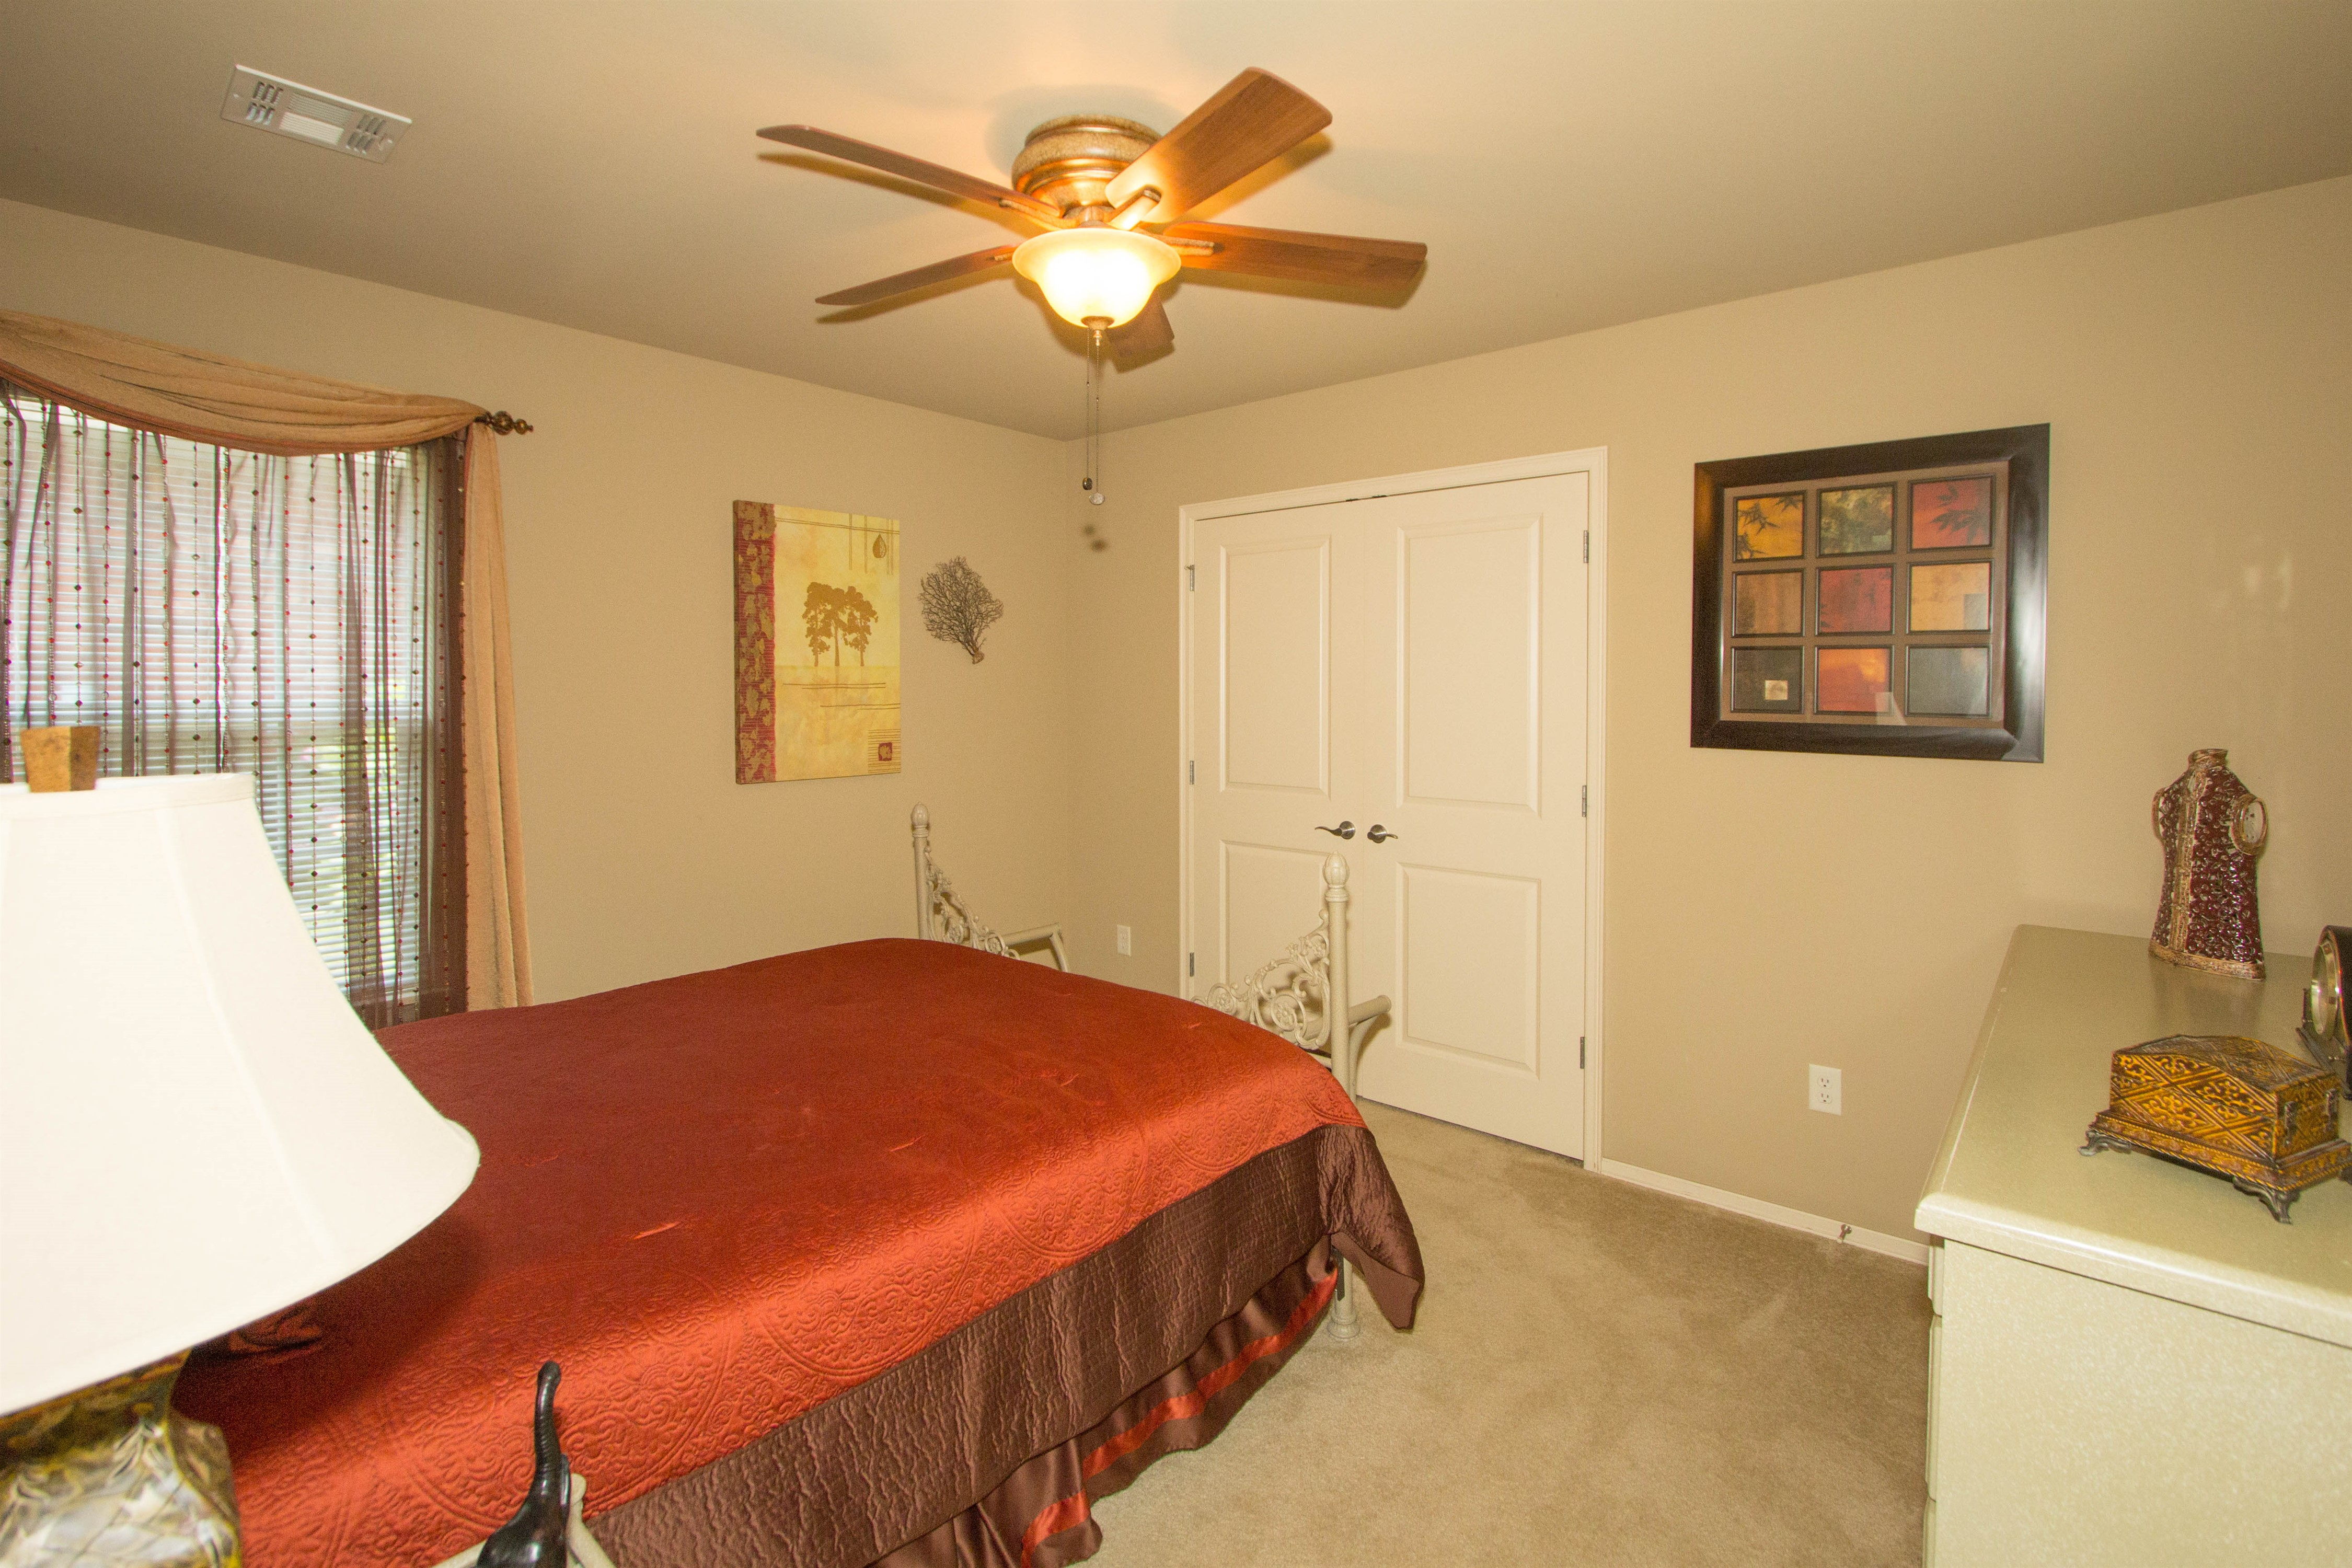 12517 S 4th Court Property Photo 19